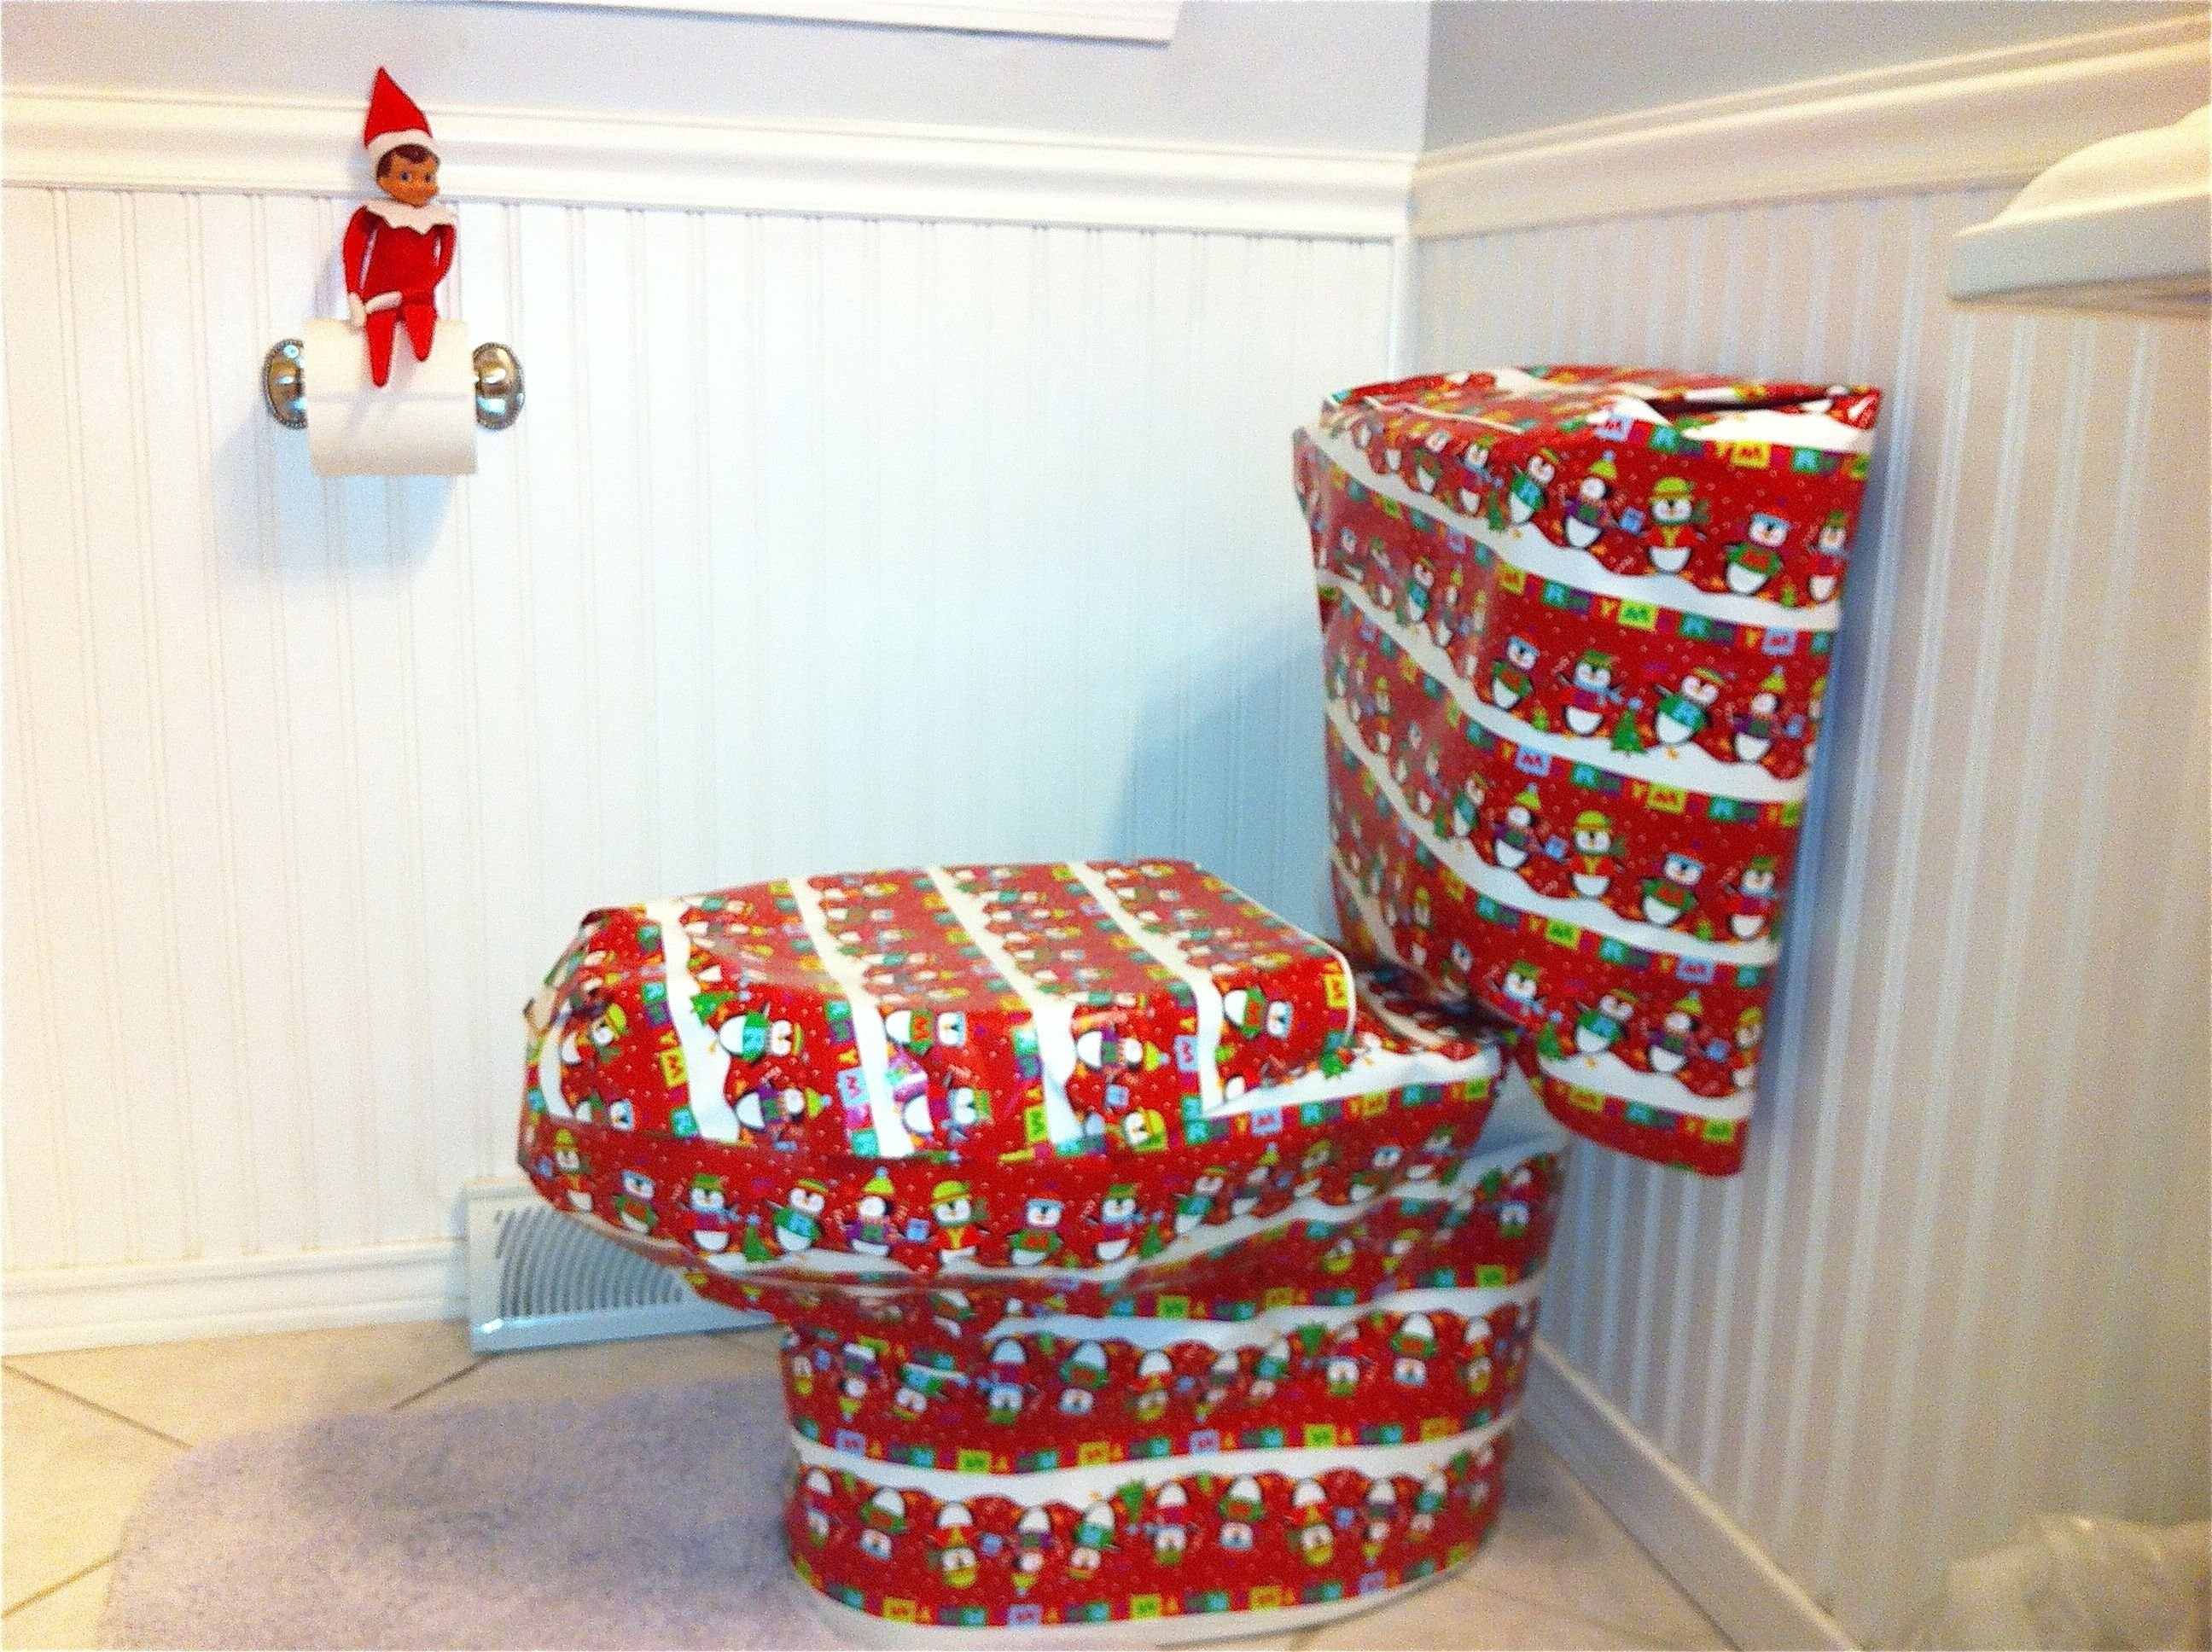 10 Most Popular Ideas For Elf On The Shelf Pranks 25 genius elf on the shelf ideas big moon elves and shelves